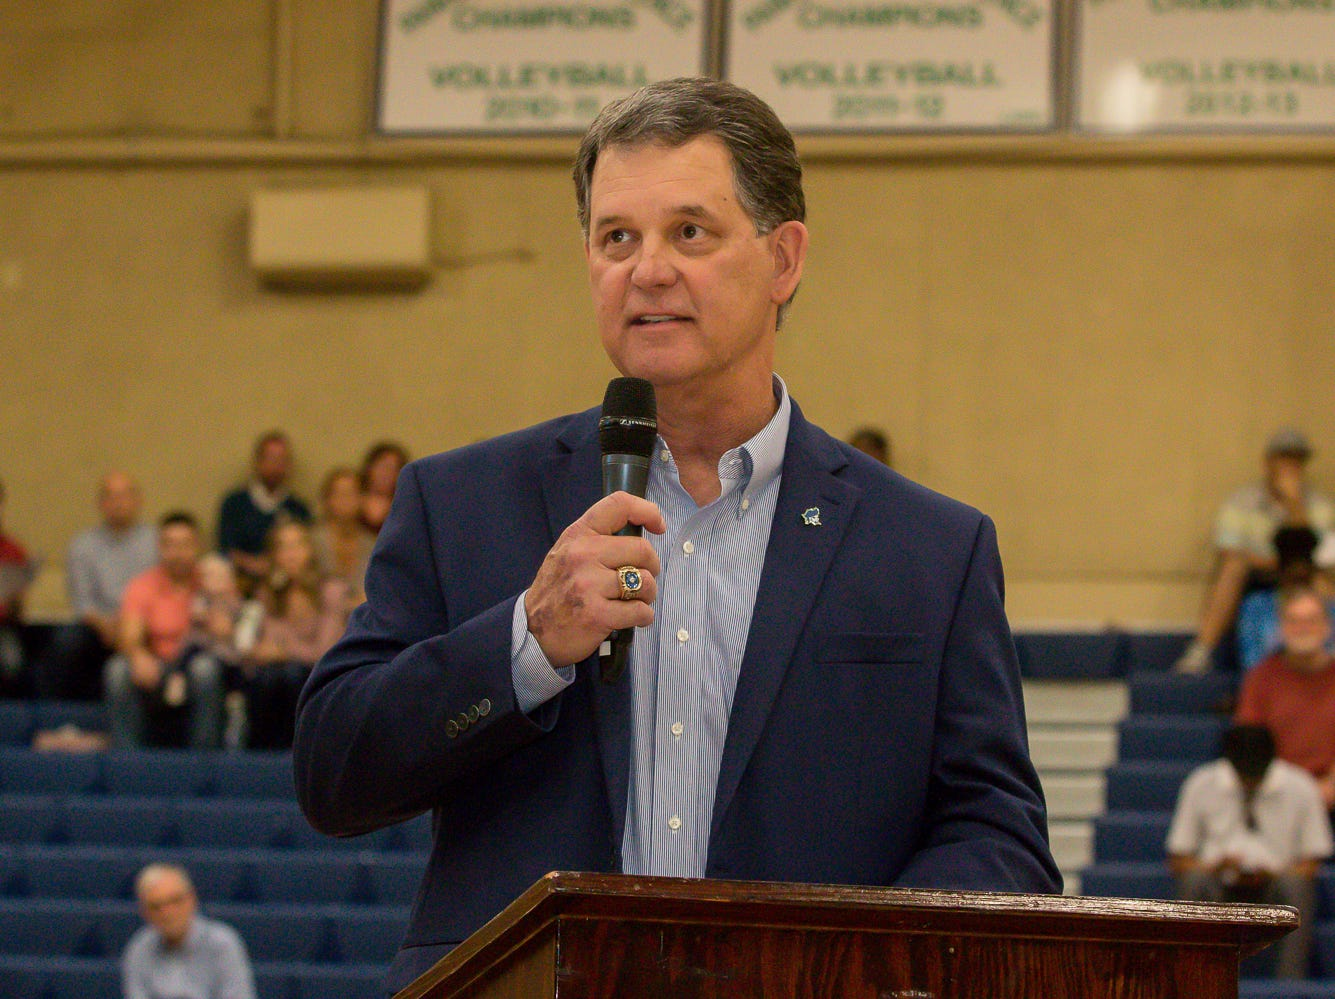 Bill Hamilton, director of athletics at Pensacola State College, speaks during the college's inaugural Athletics Hall of Fame induction ceremony on Saturday, February 16, 2019, in the Hartsell Arena on the main campus.